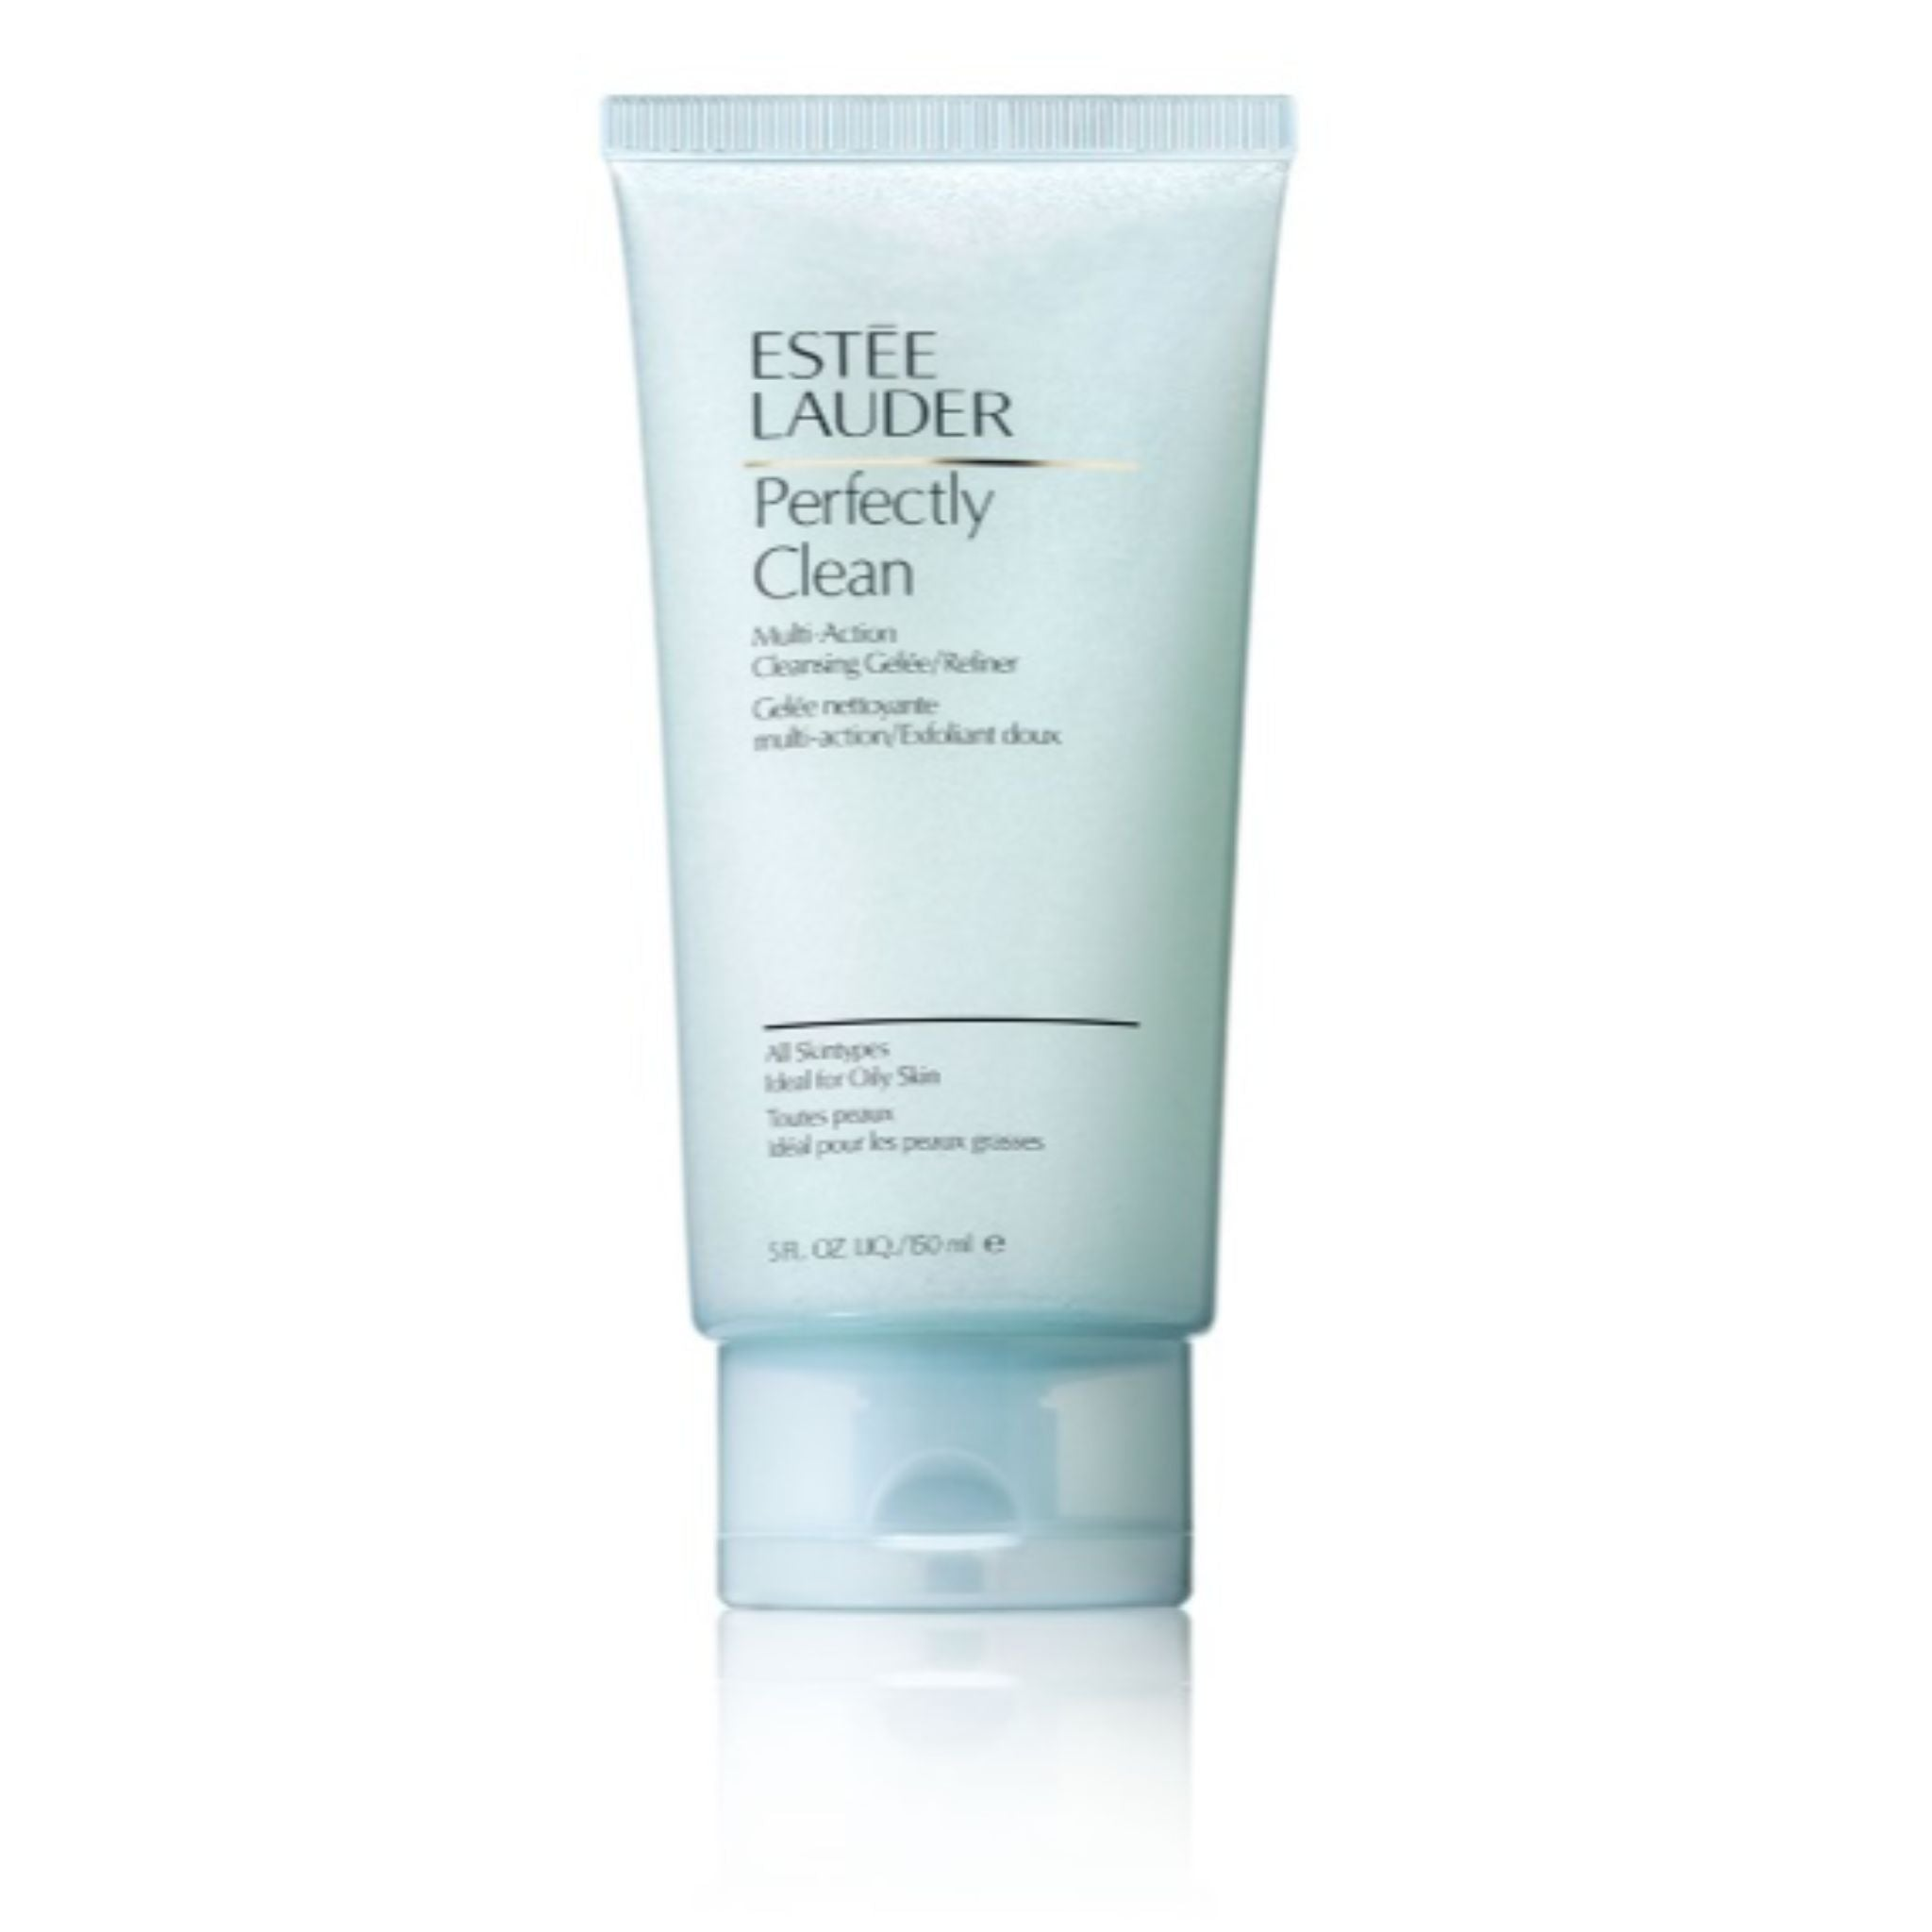 Estée Lauder Perfectly Clean Foaming Gelee Cleanser/Daily Refining 150ml